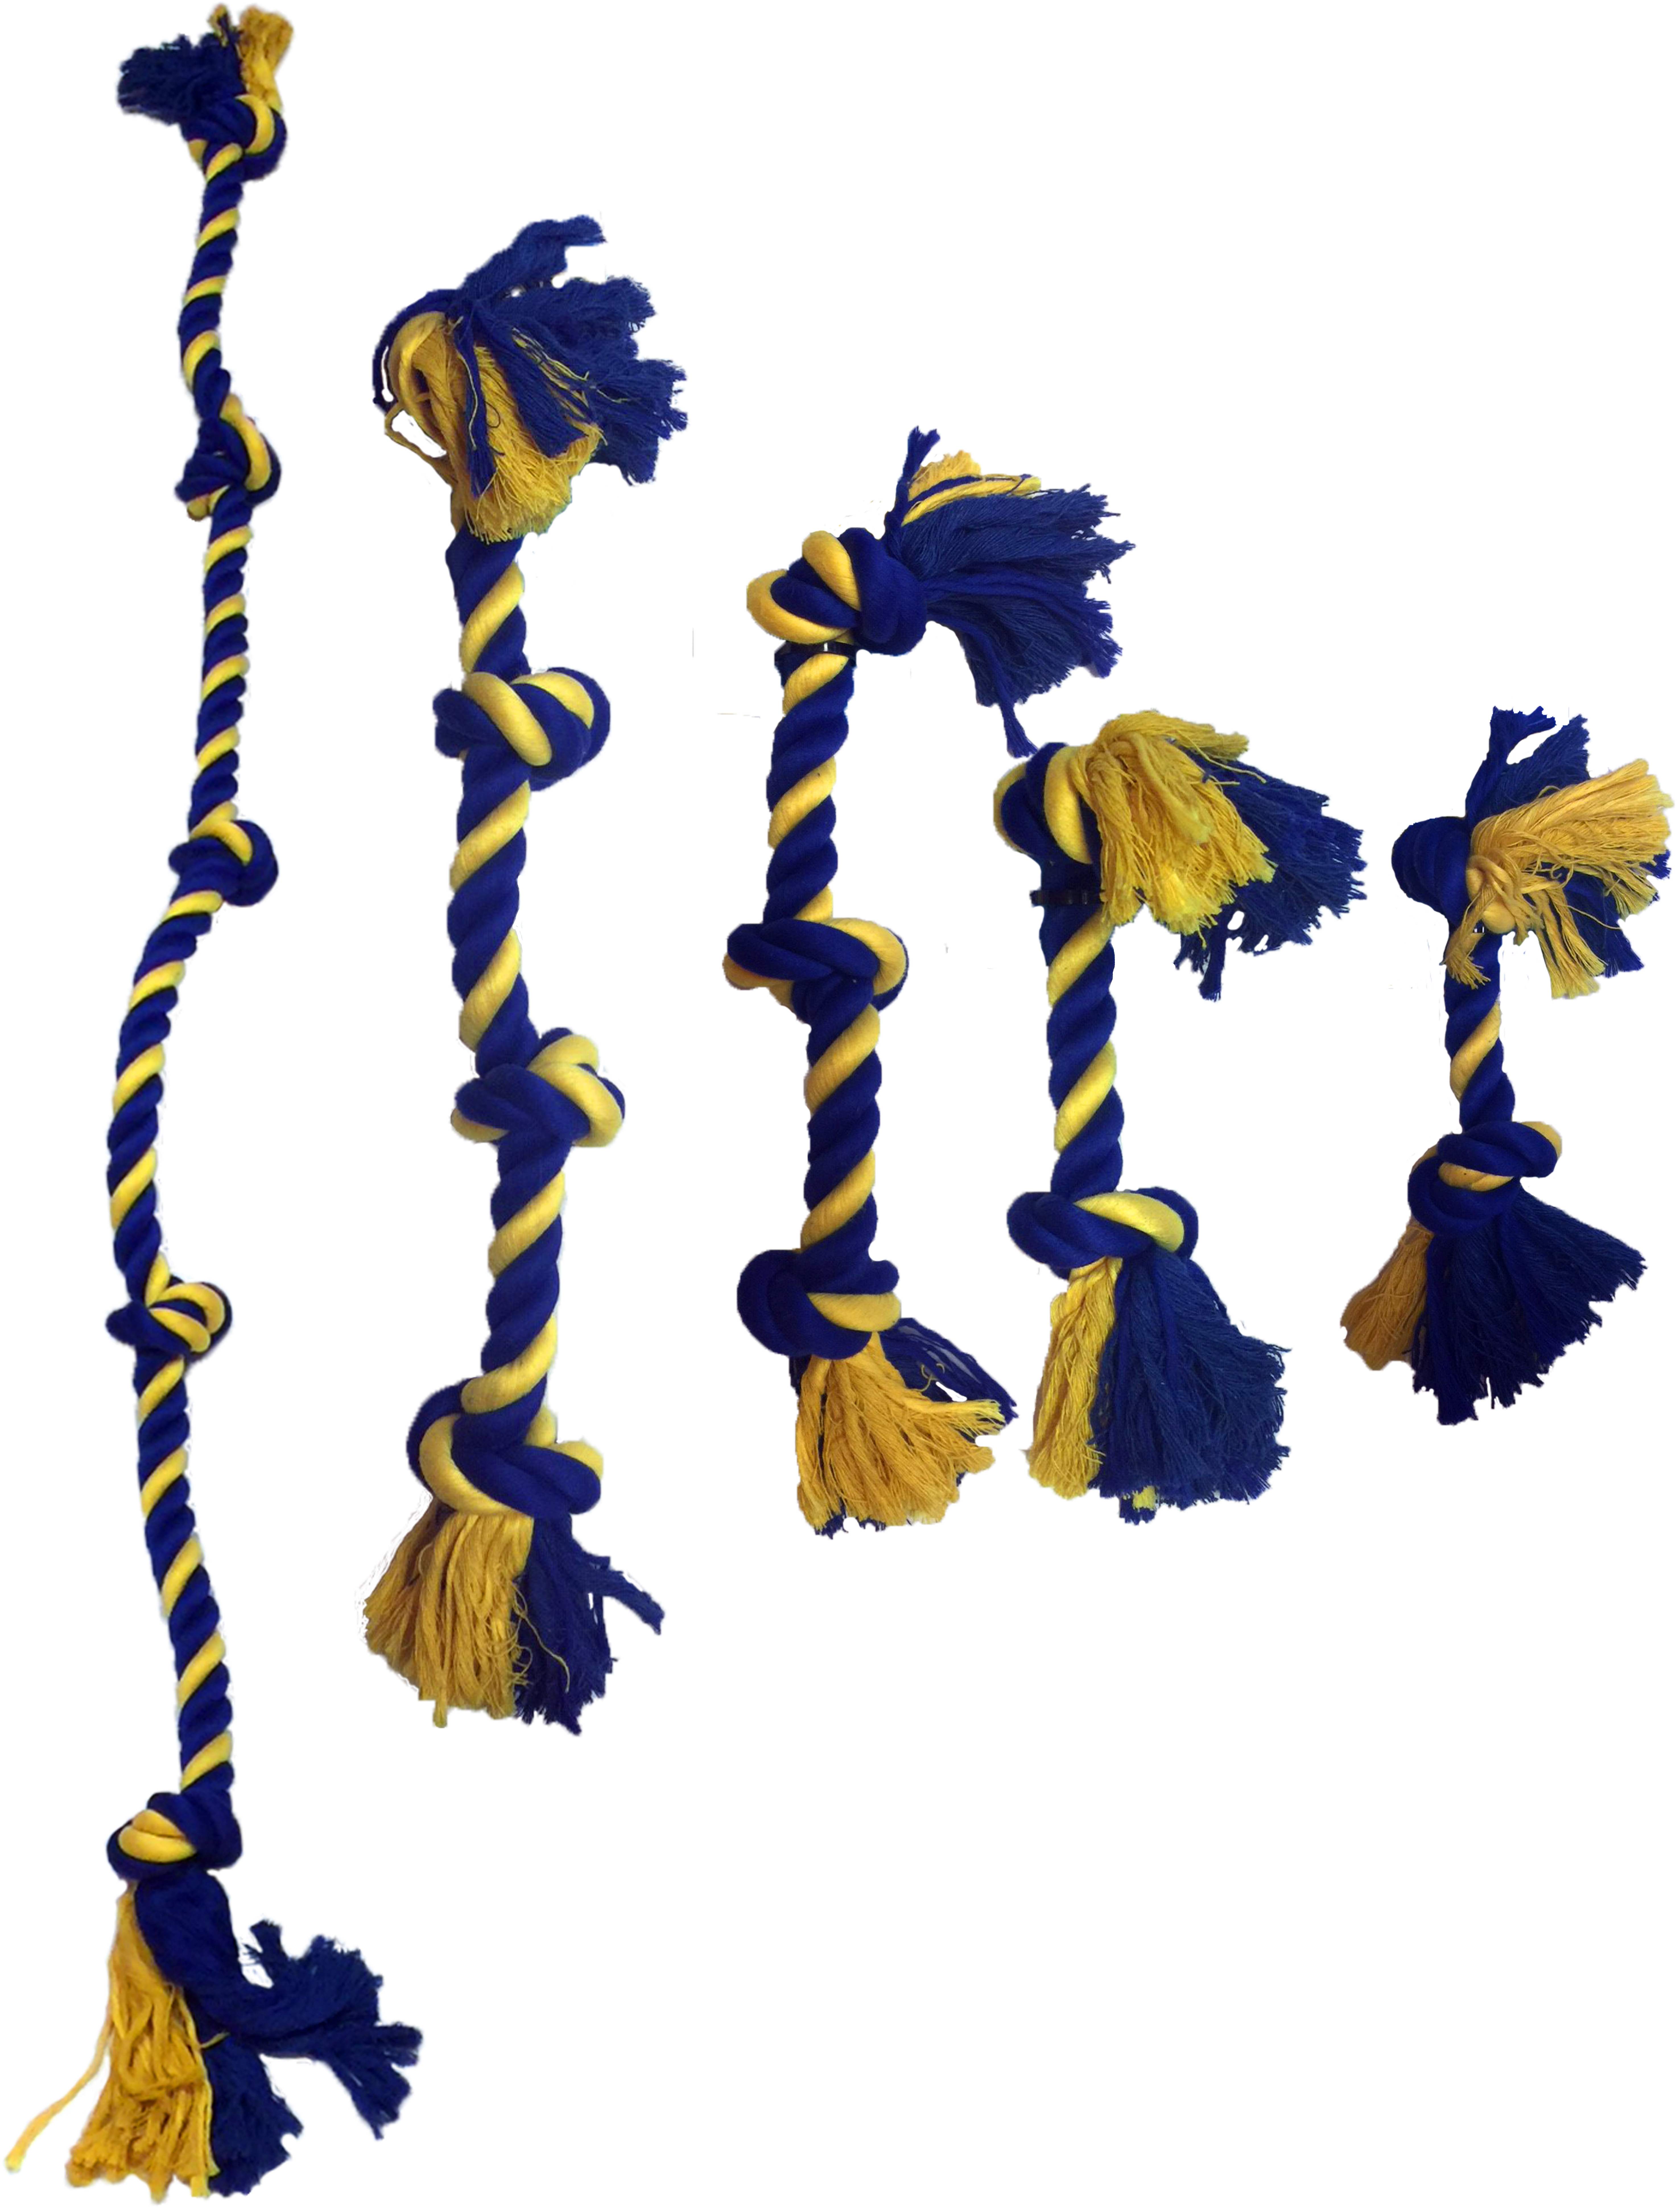 2-Knot Cotton Rope 22 cm